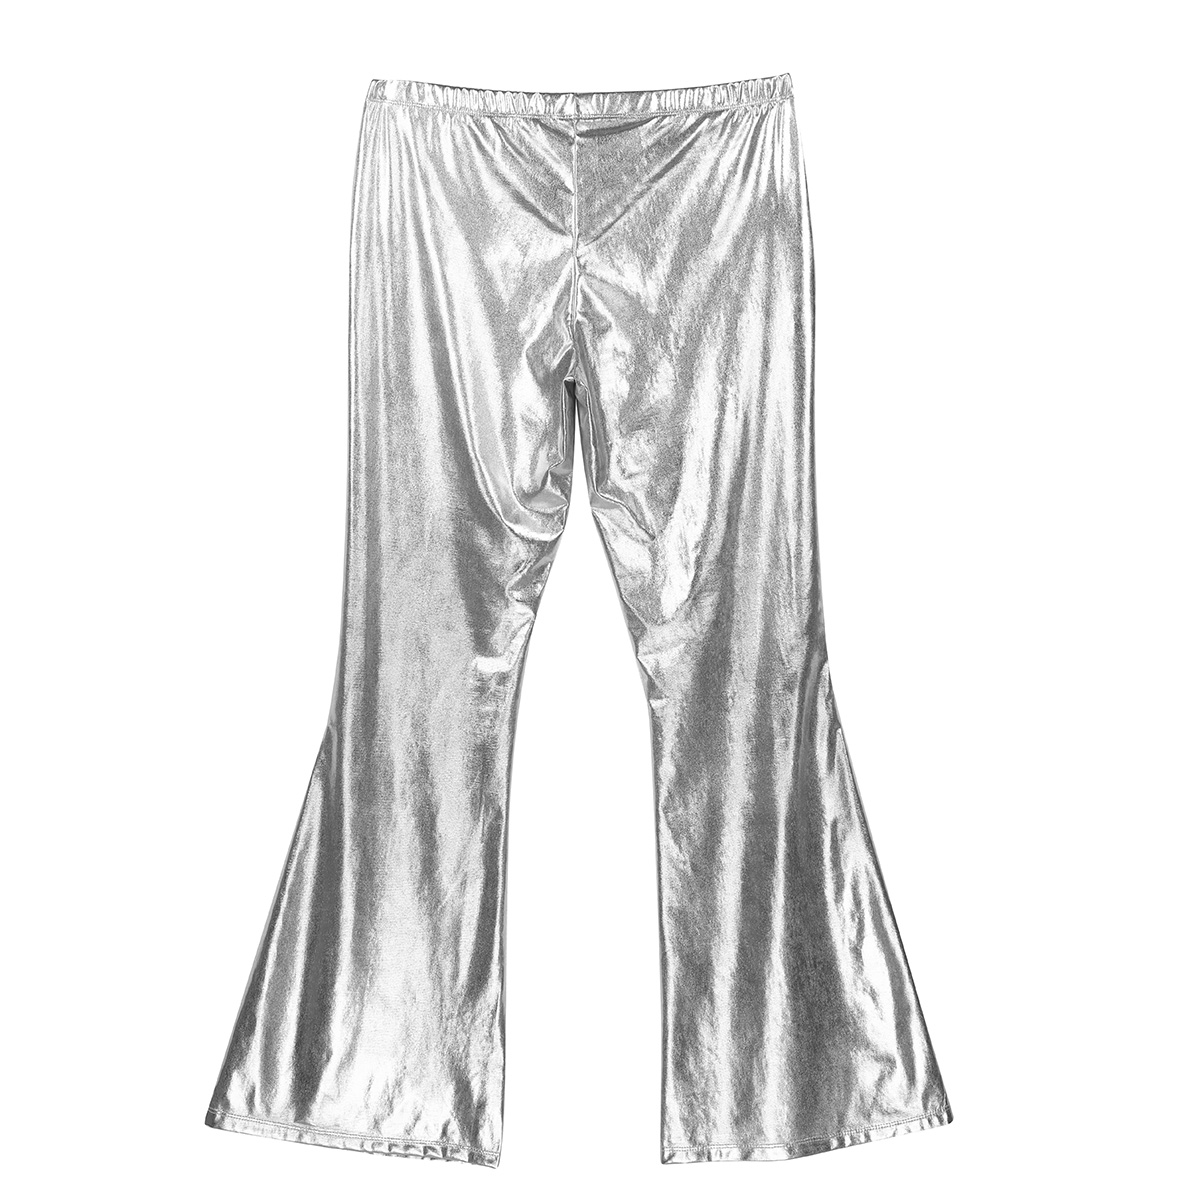 ChicTry Adults Mens Shiny Metallic Disco Pants with Bell Bottom Flared Long Pants Dude Costume Trousers for 70's Theme Parties 31